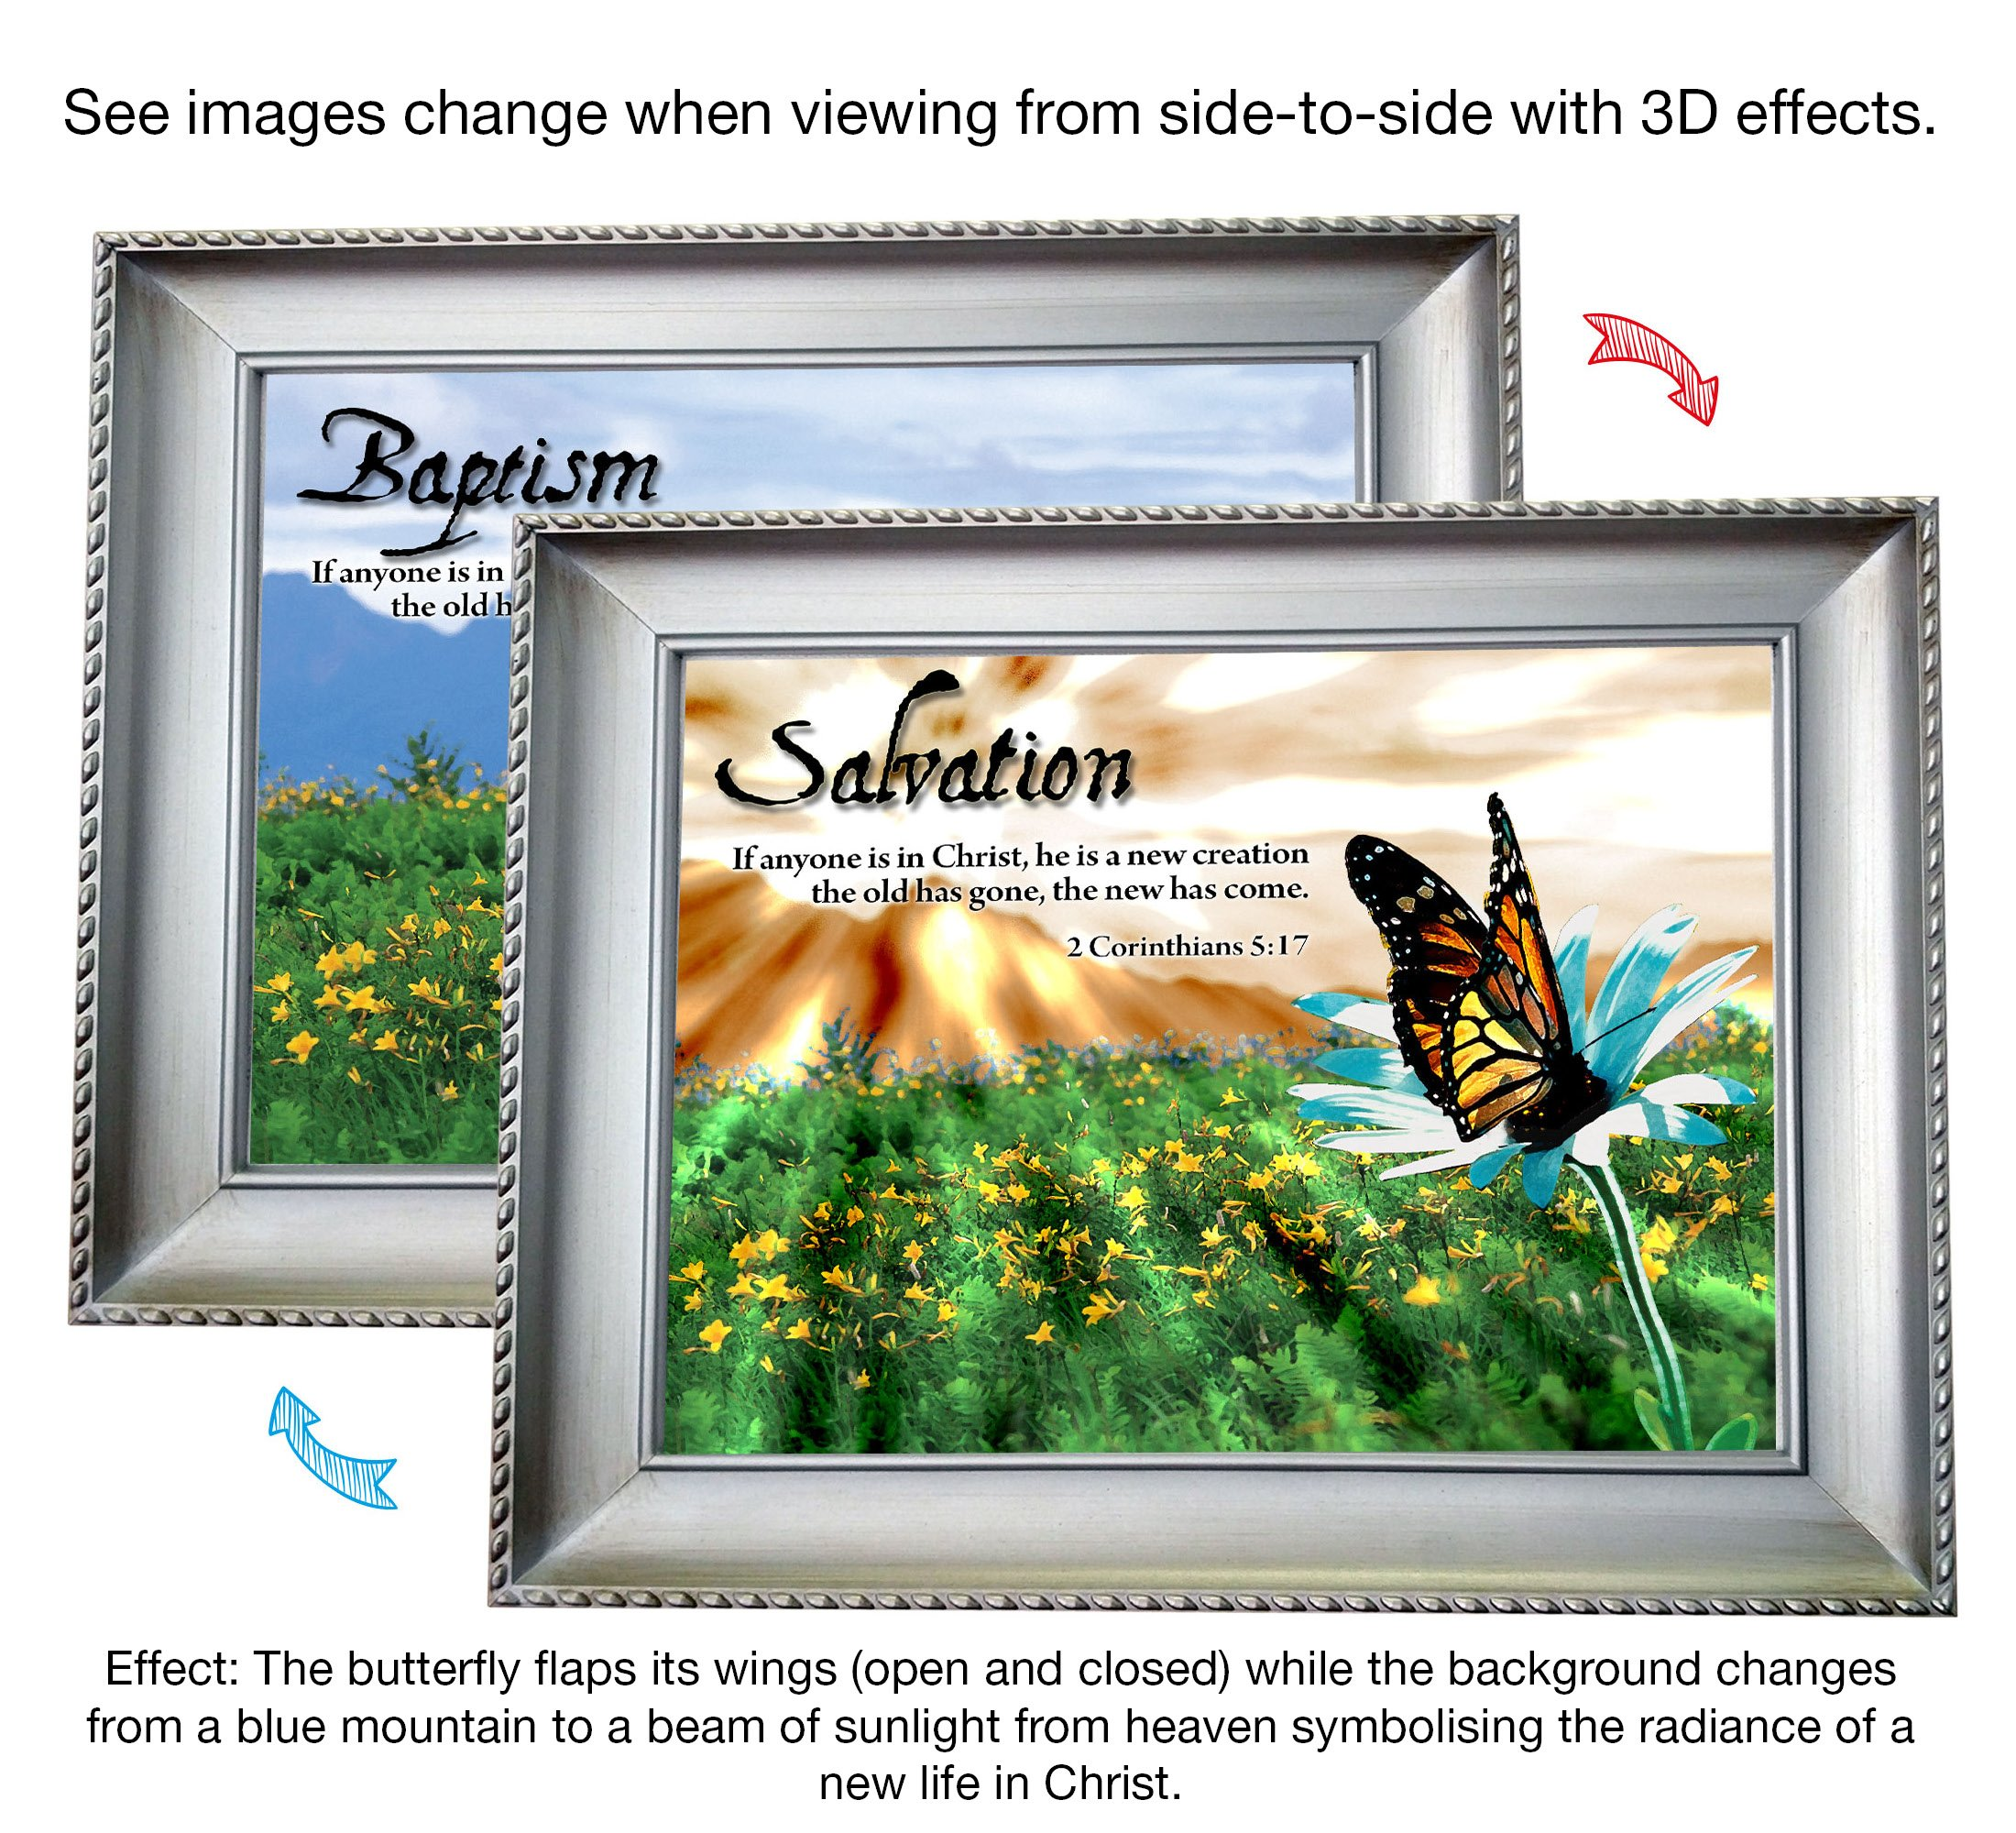 VERSERIES - Baptism Picture Frame - Christian Gift and Art - Animated Photo Frame - Bible Verse Gift - Choose Your Design (Modern Silver Frame Design, Set of 1)